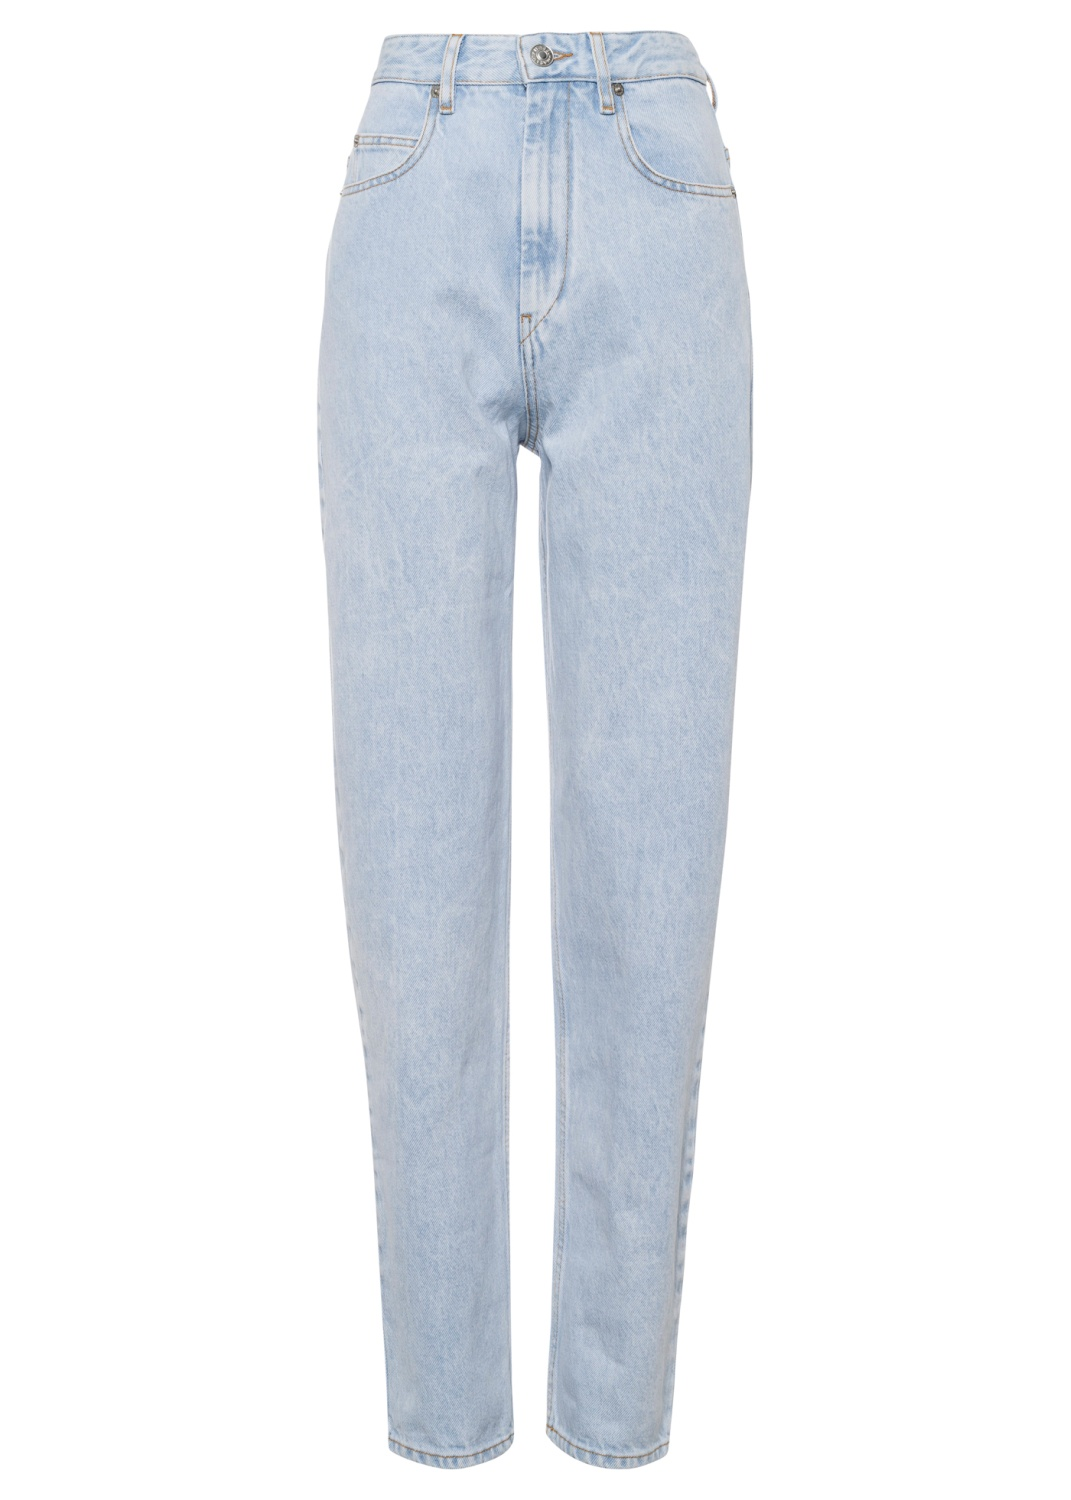 CORSYSR Trouser image number 0